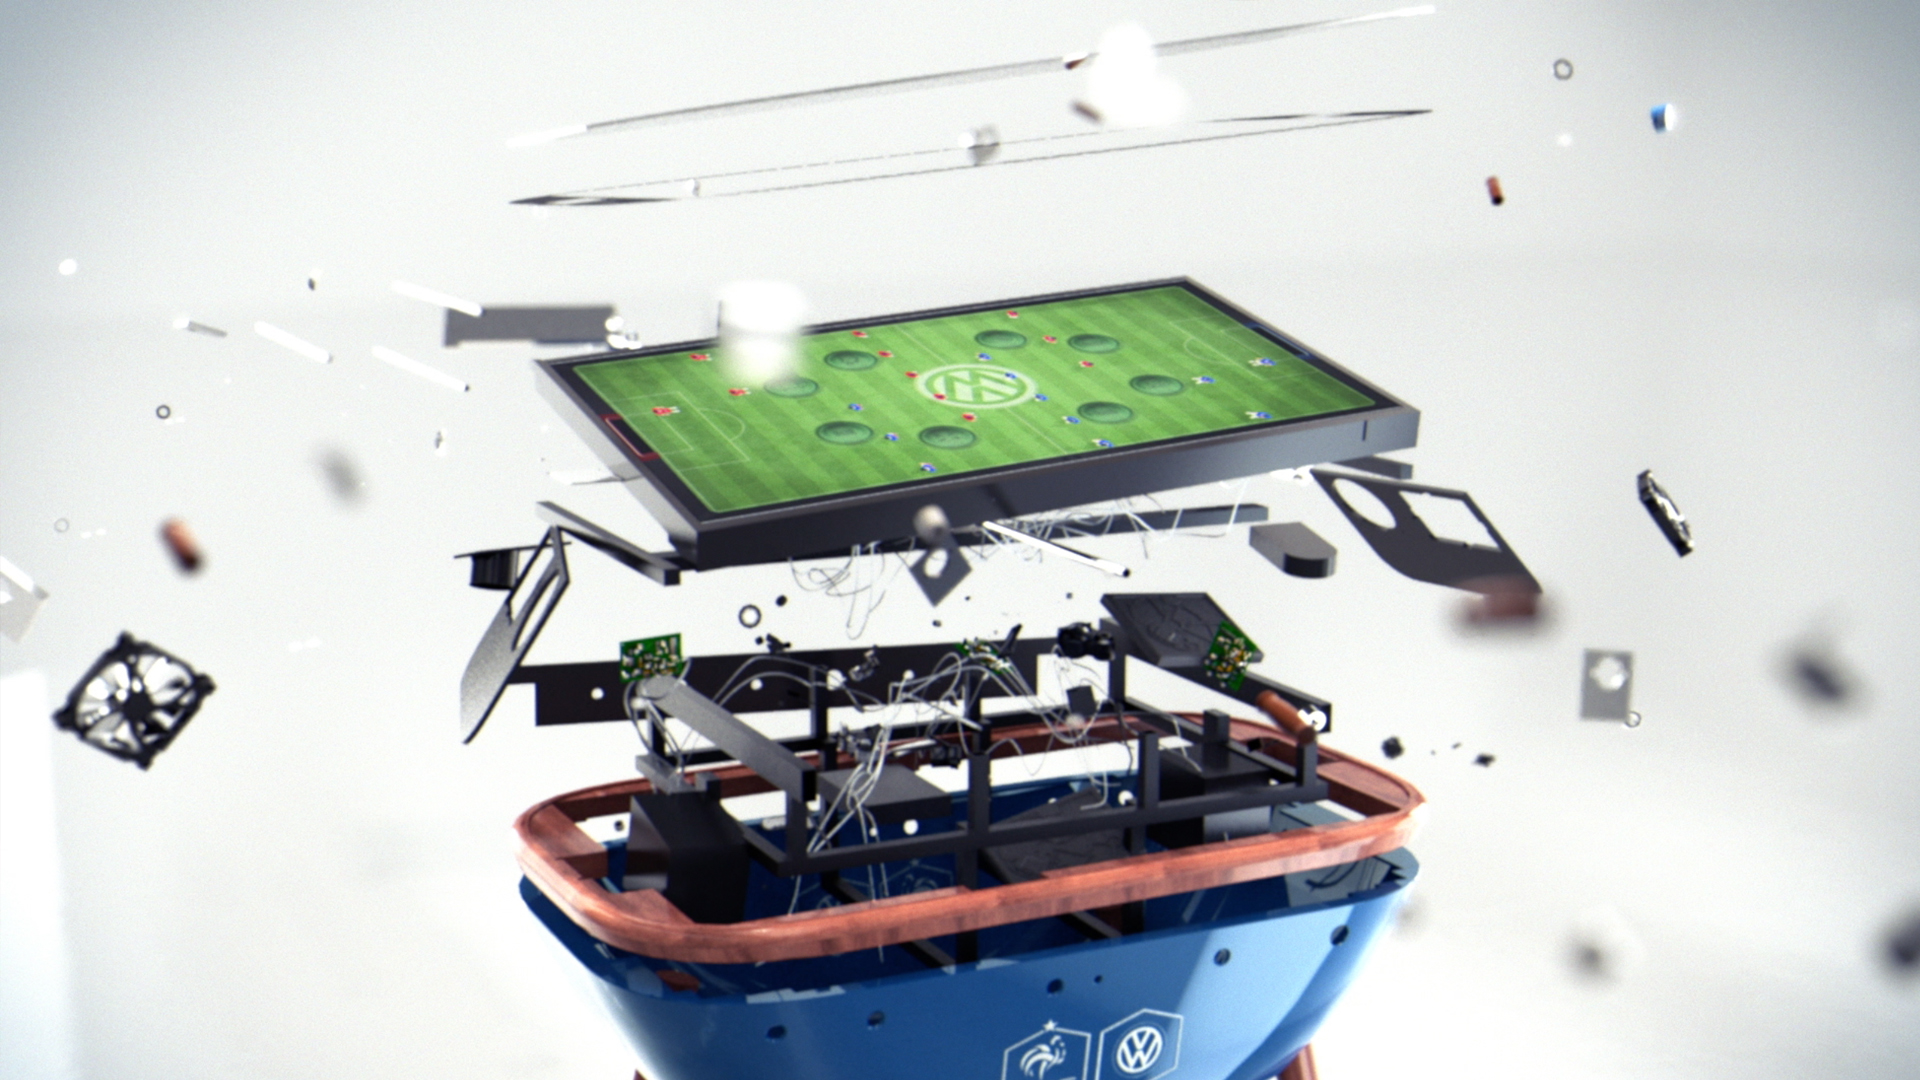 The Connected Foosball Table Thumbnail